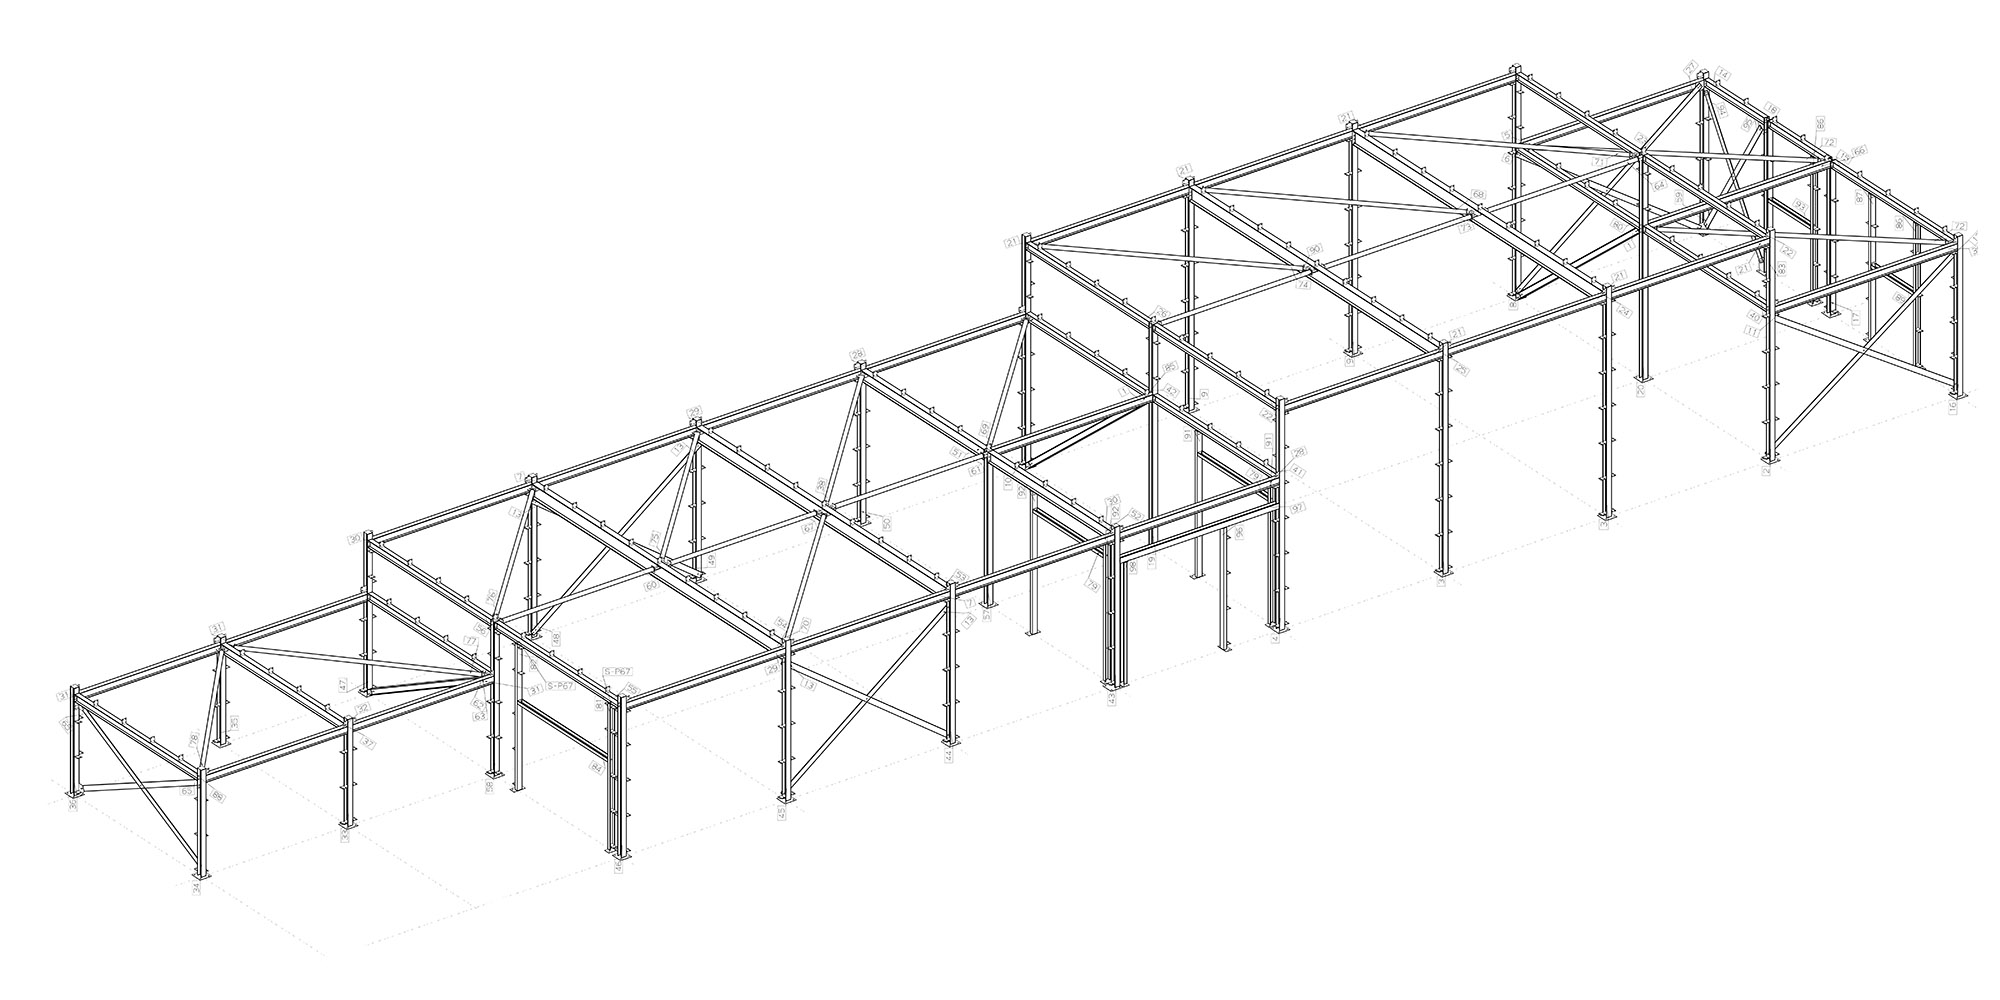 Specialists in Structural Steel Erecting across central Scotland